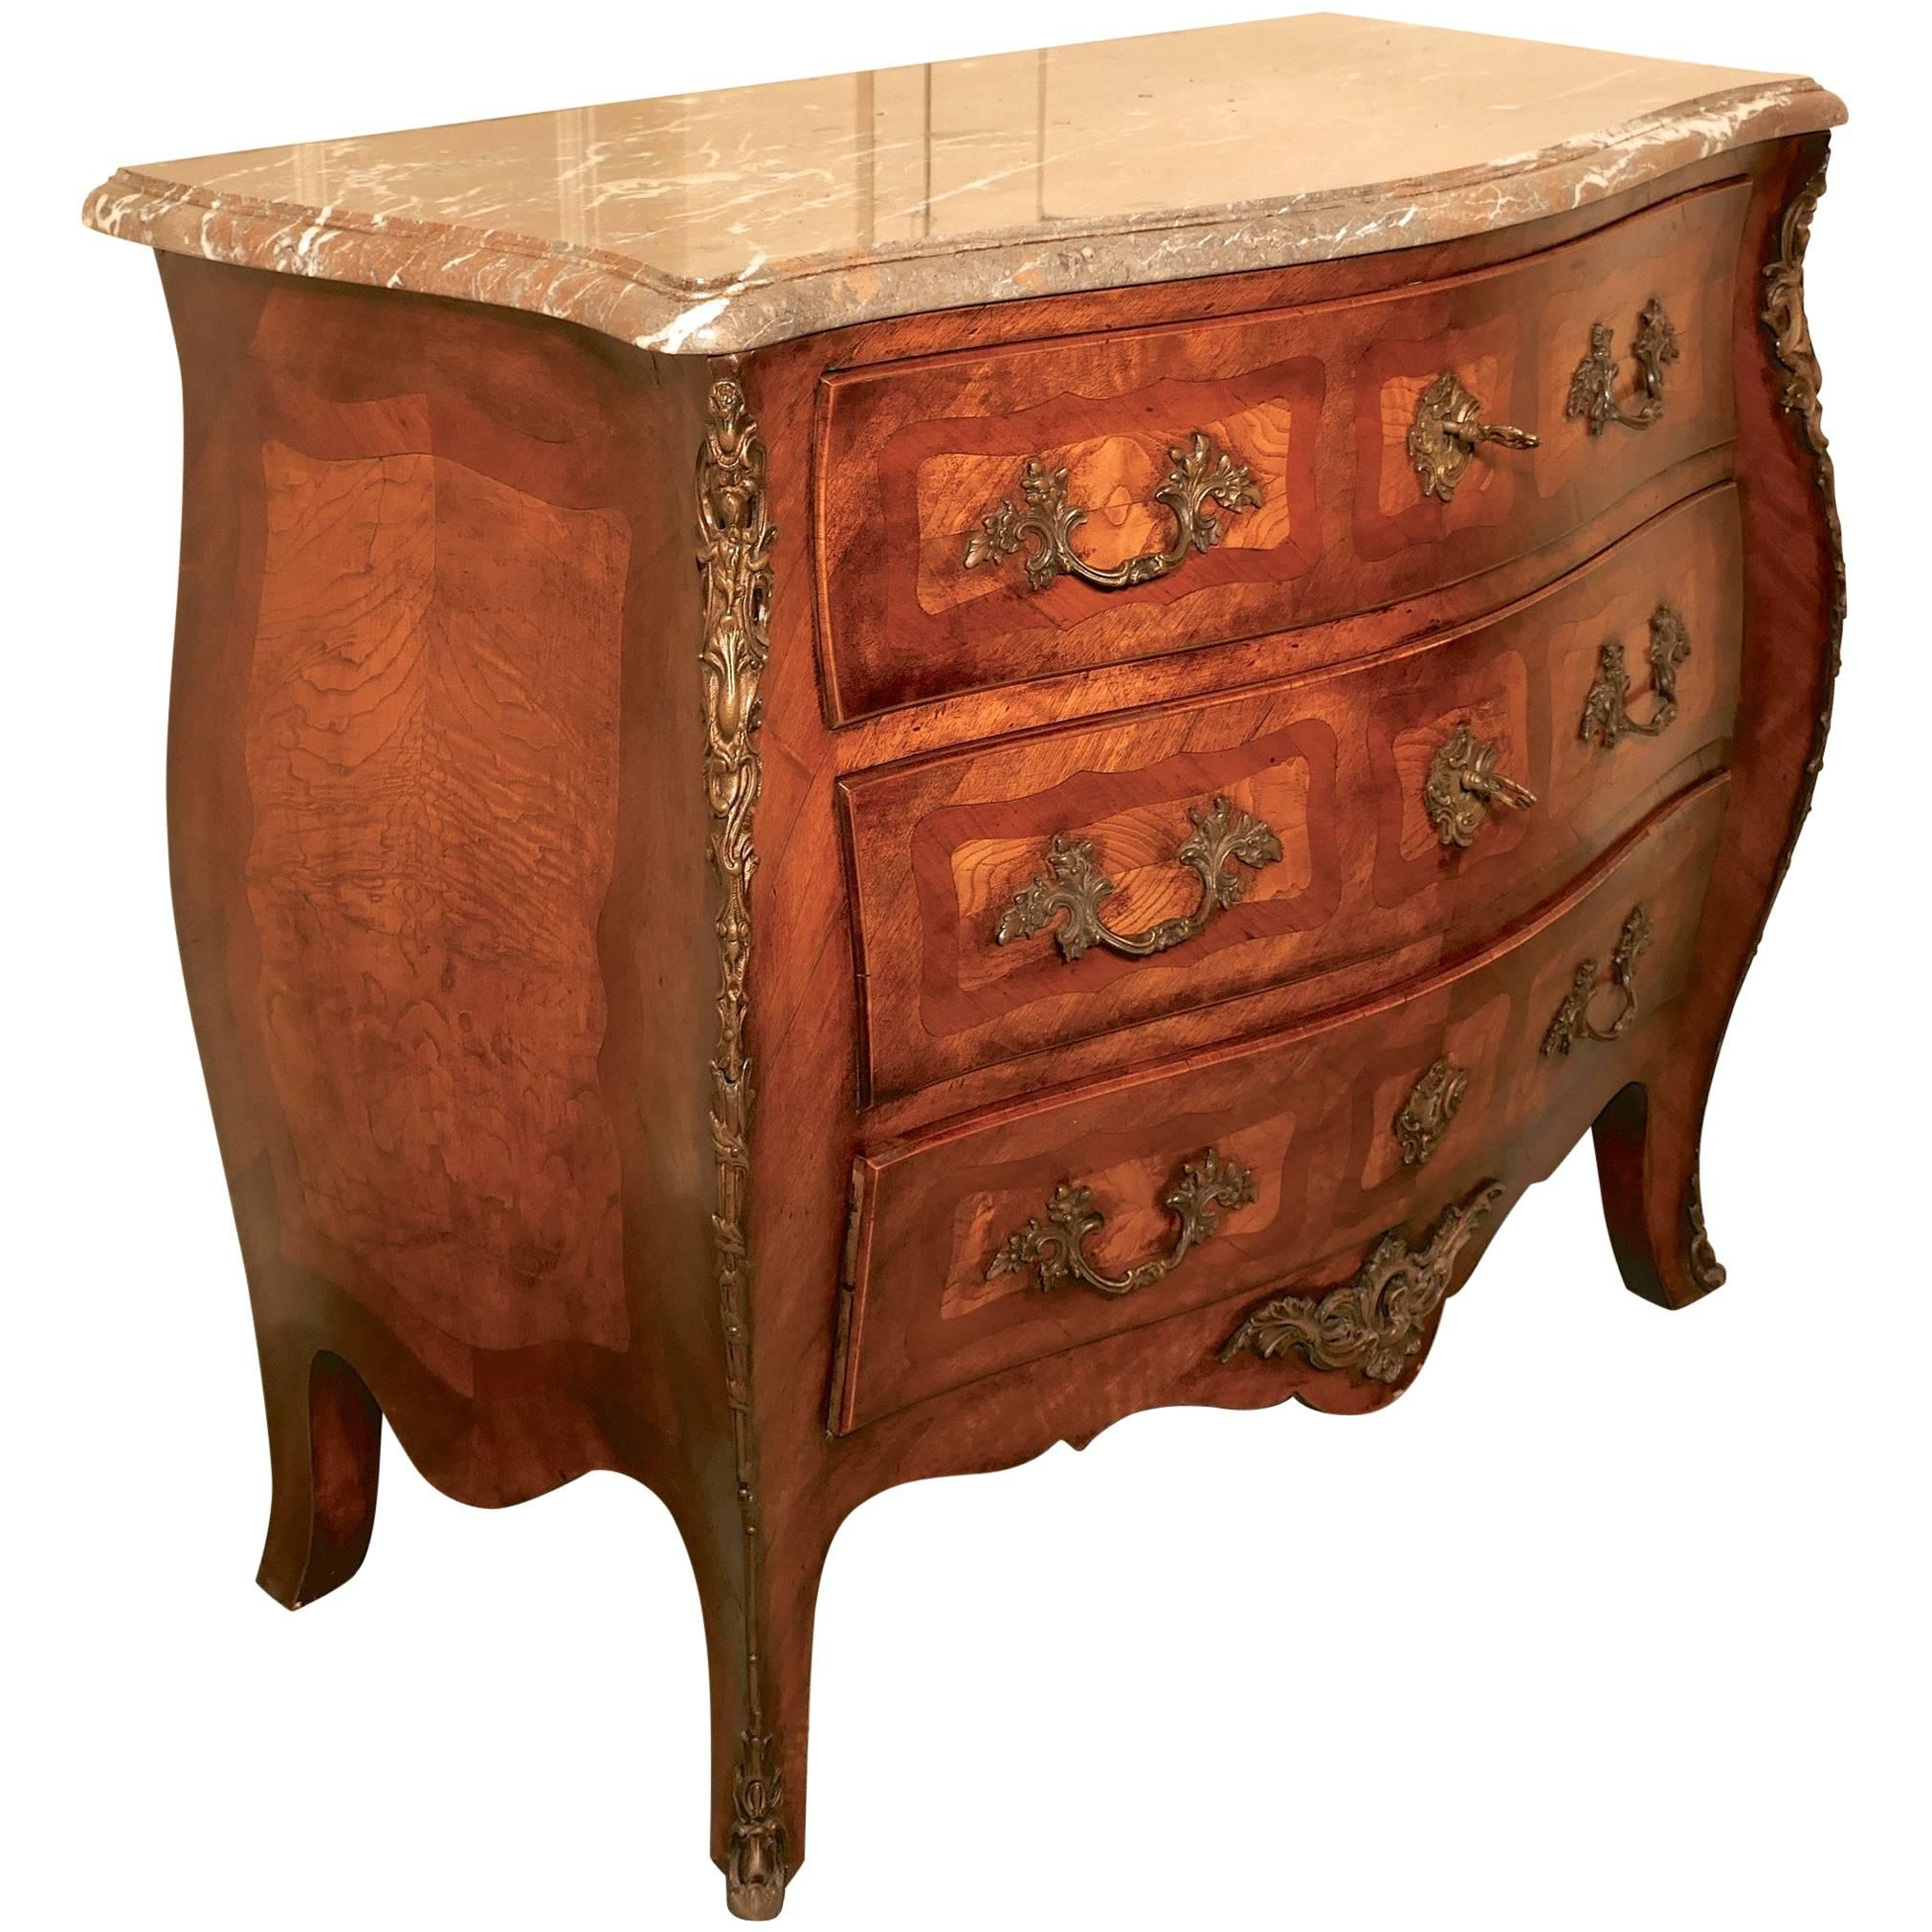 cabinets chest exceptional drawers george shop of furniture cupboard i rev walnut michael small chests bachelors bachelor s